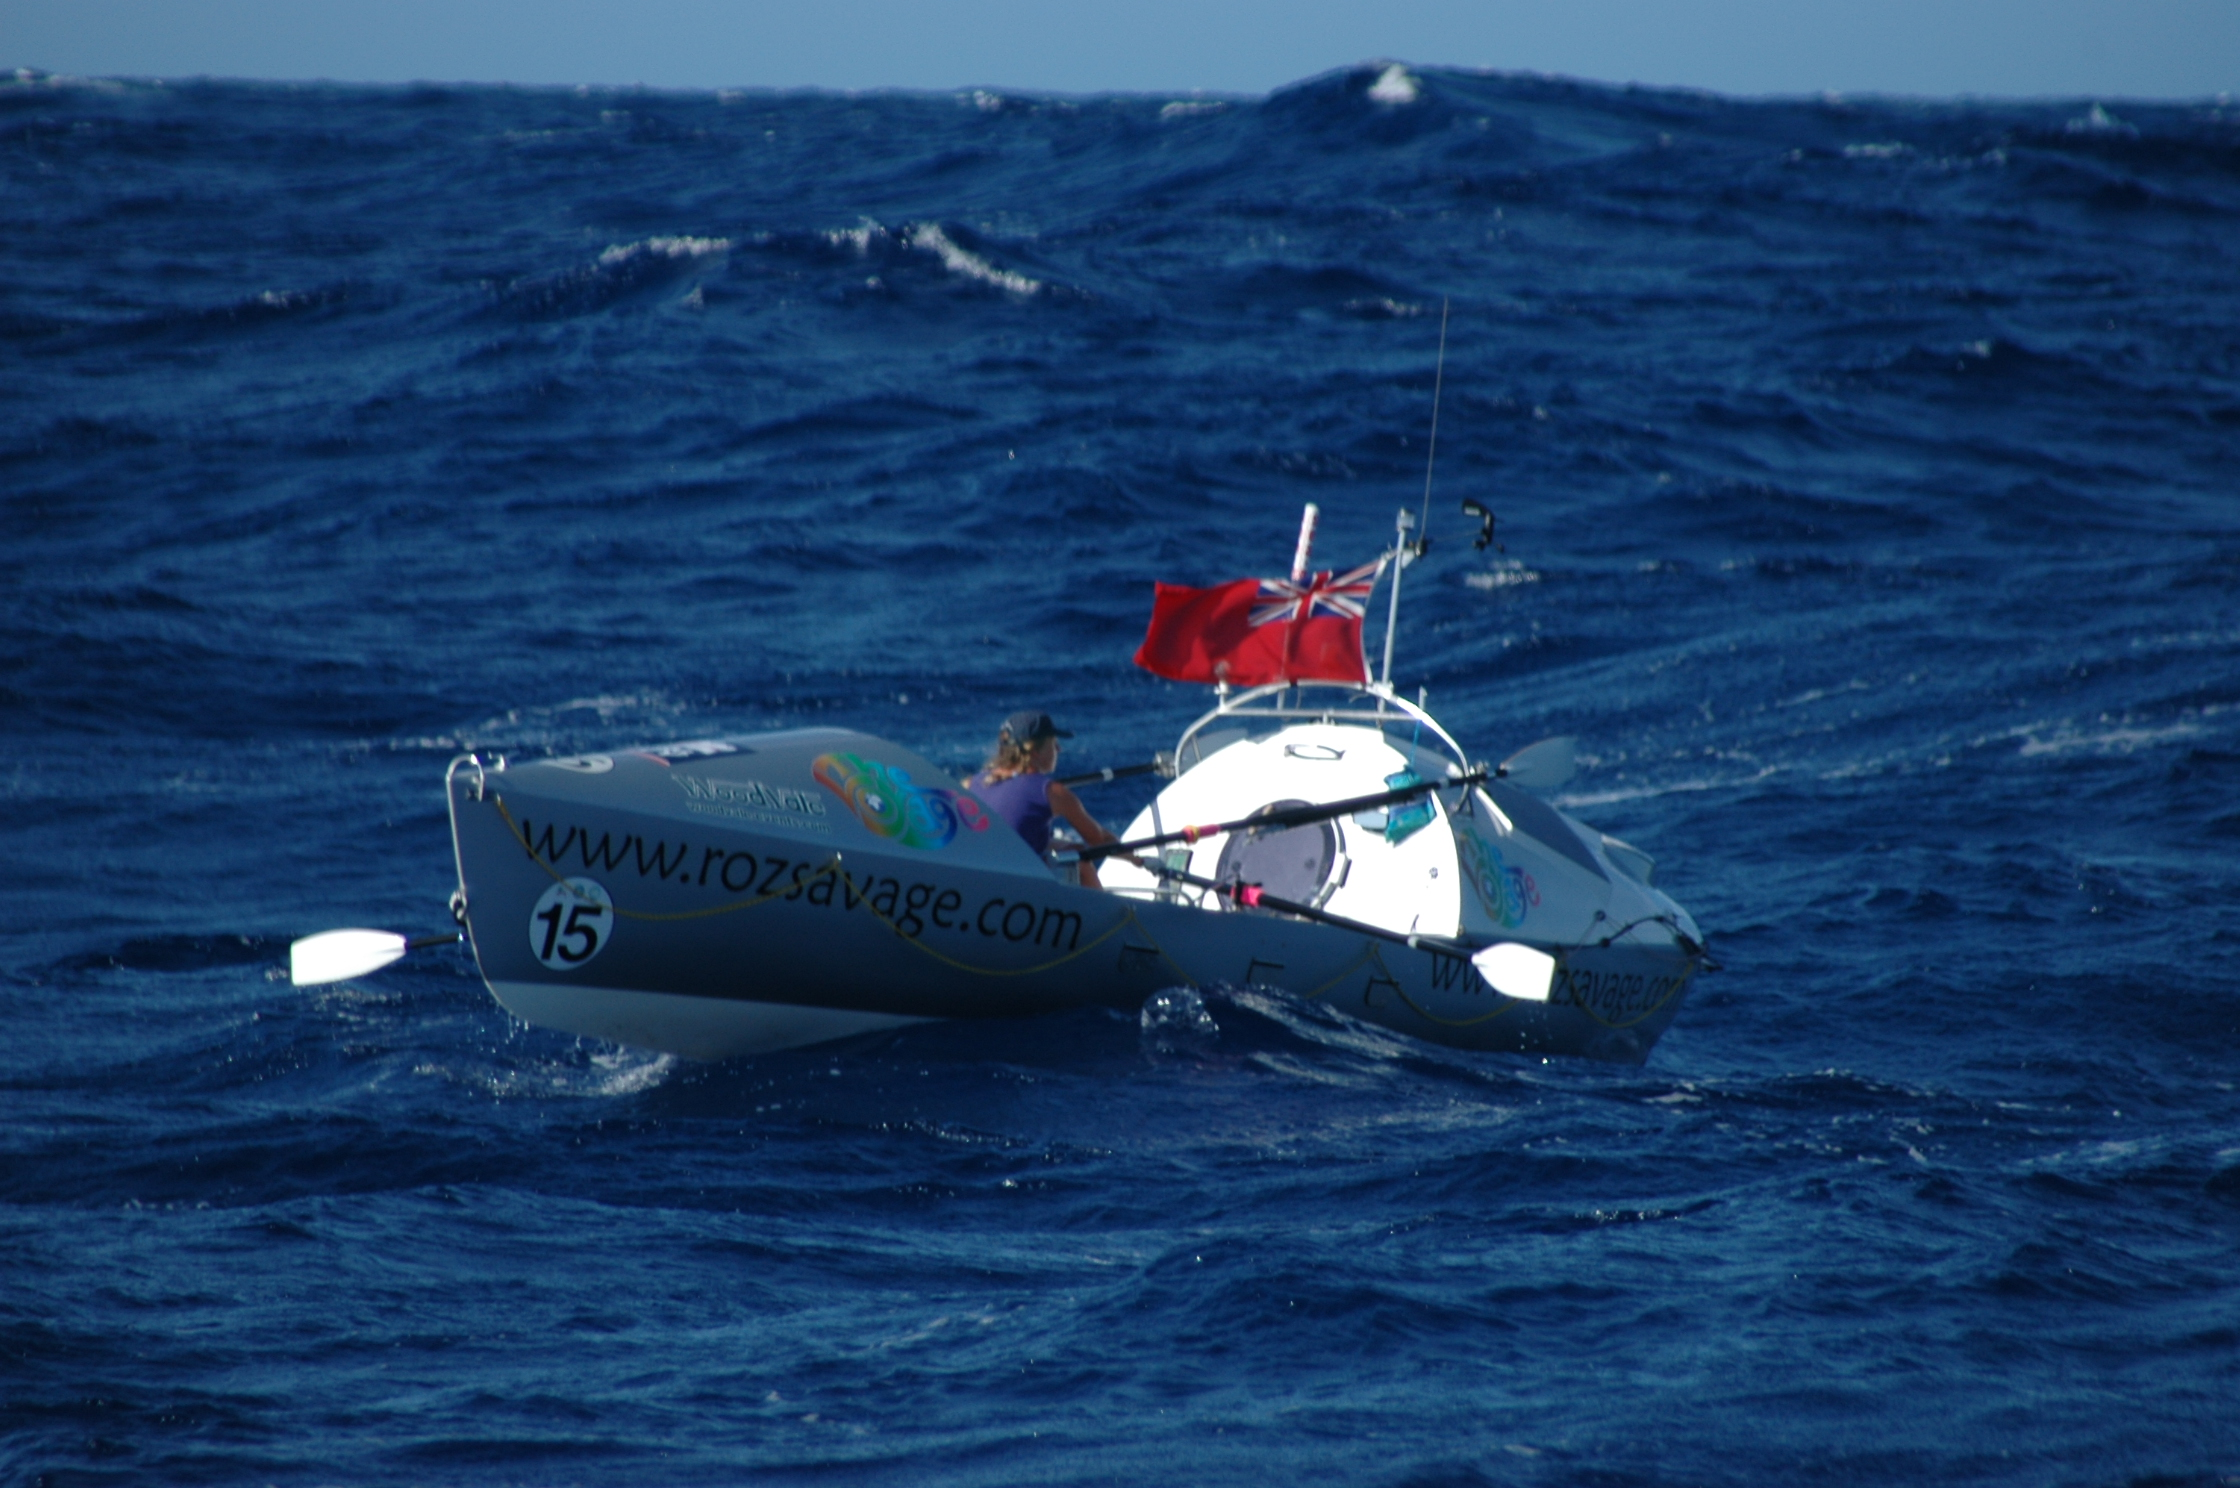 Roz Savage in her ocean rowboat, about 4 weeks after setting out from the Canary Islands on the Atlantic Rowing Race 2005.   (Photo taken from support vessel Aurora by Dan Byles)